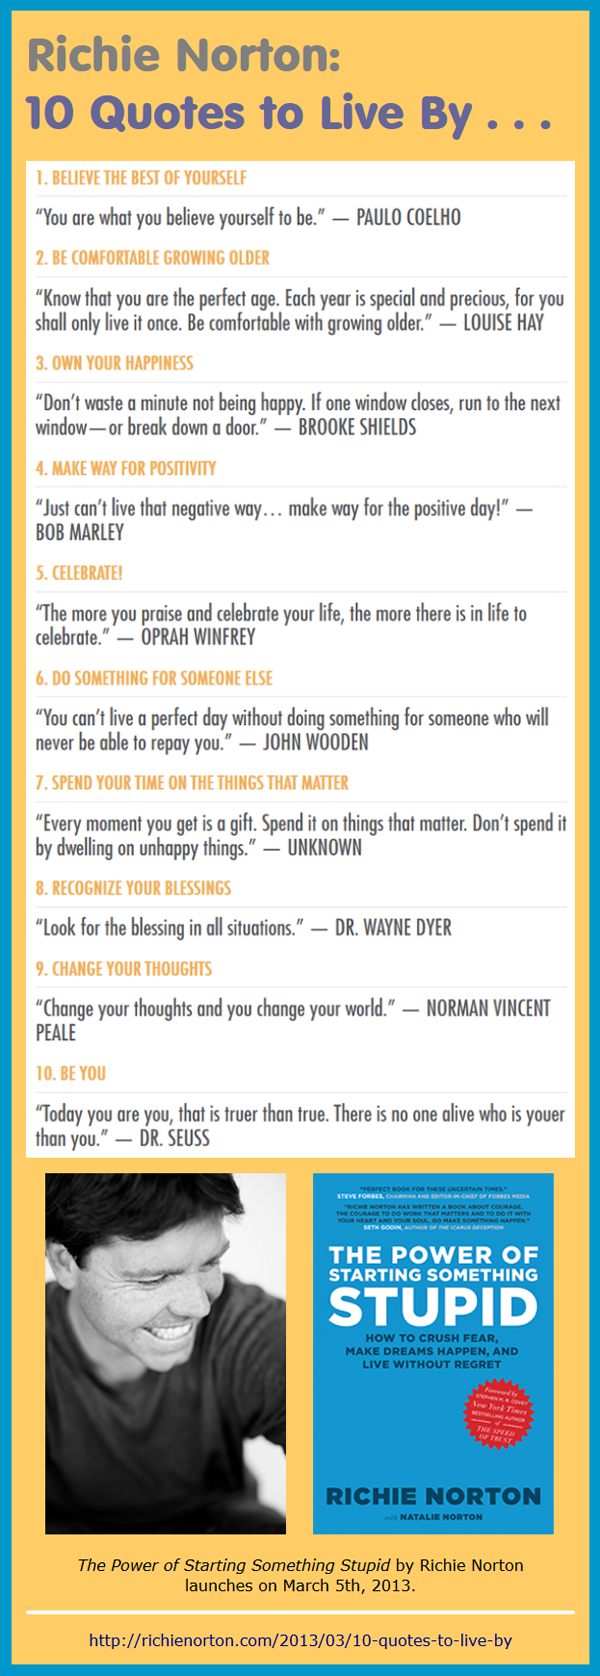 Richie Norton 10 Quotes To Live By Infographic A Day